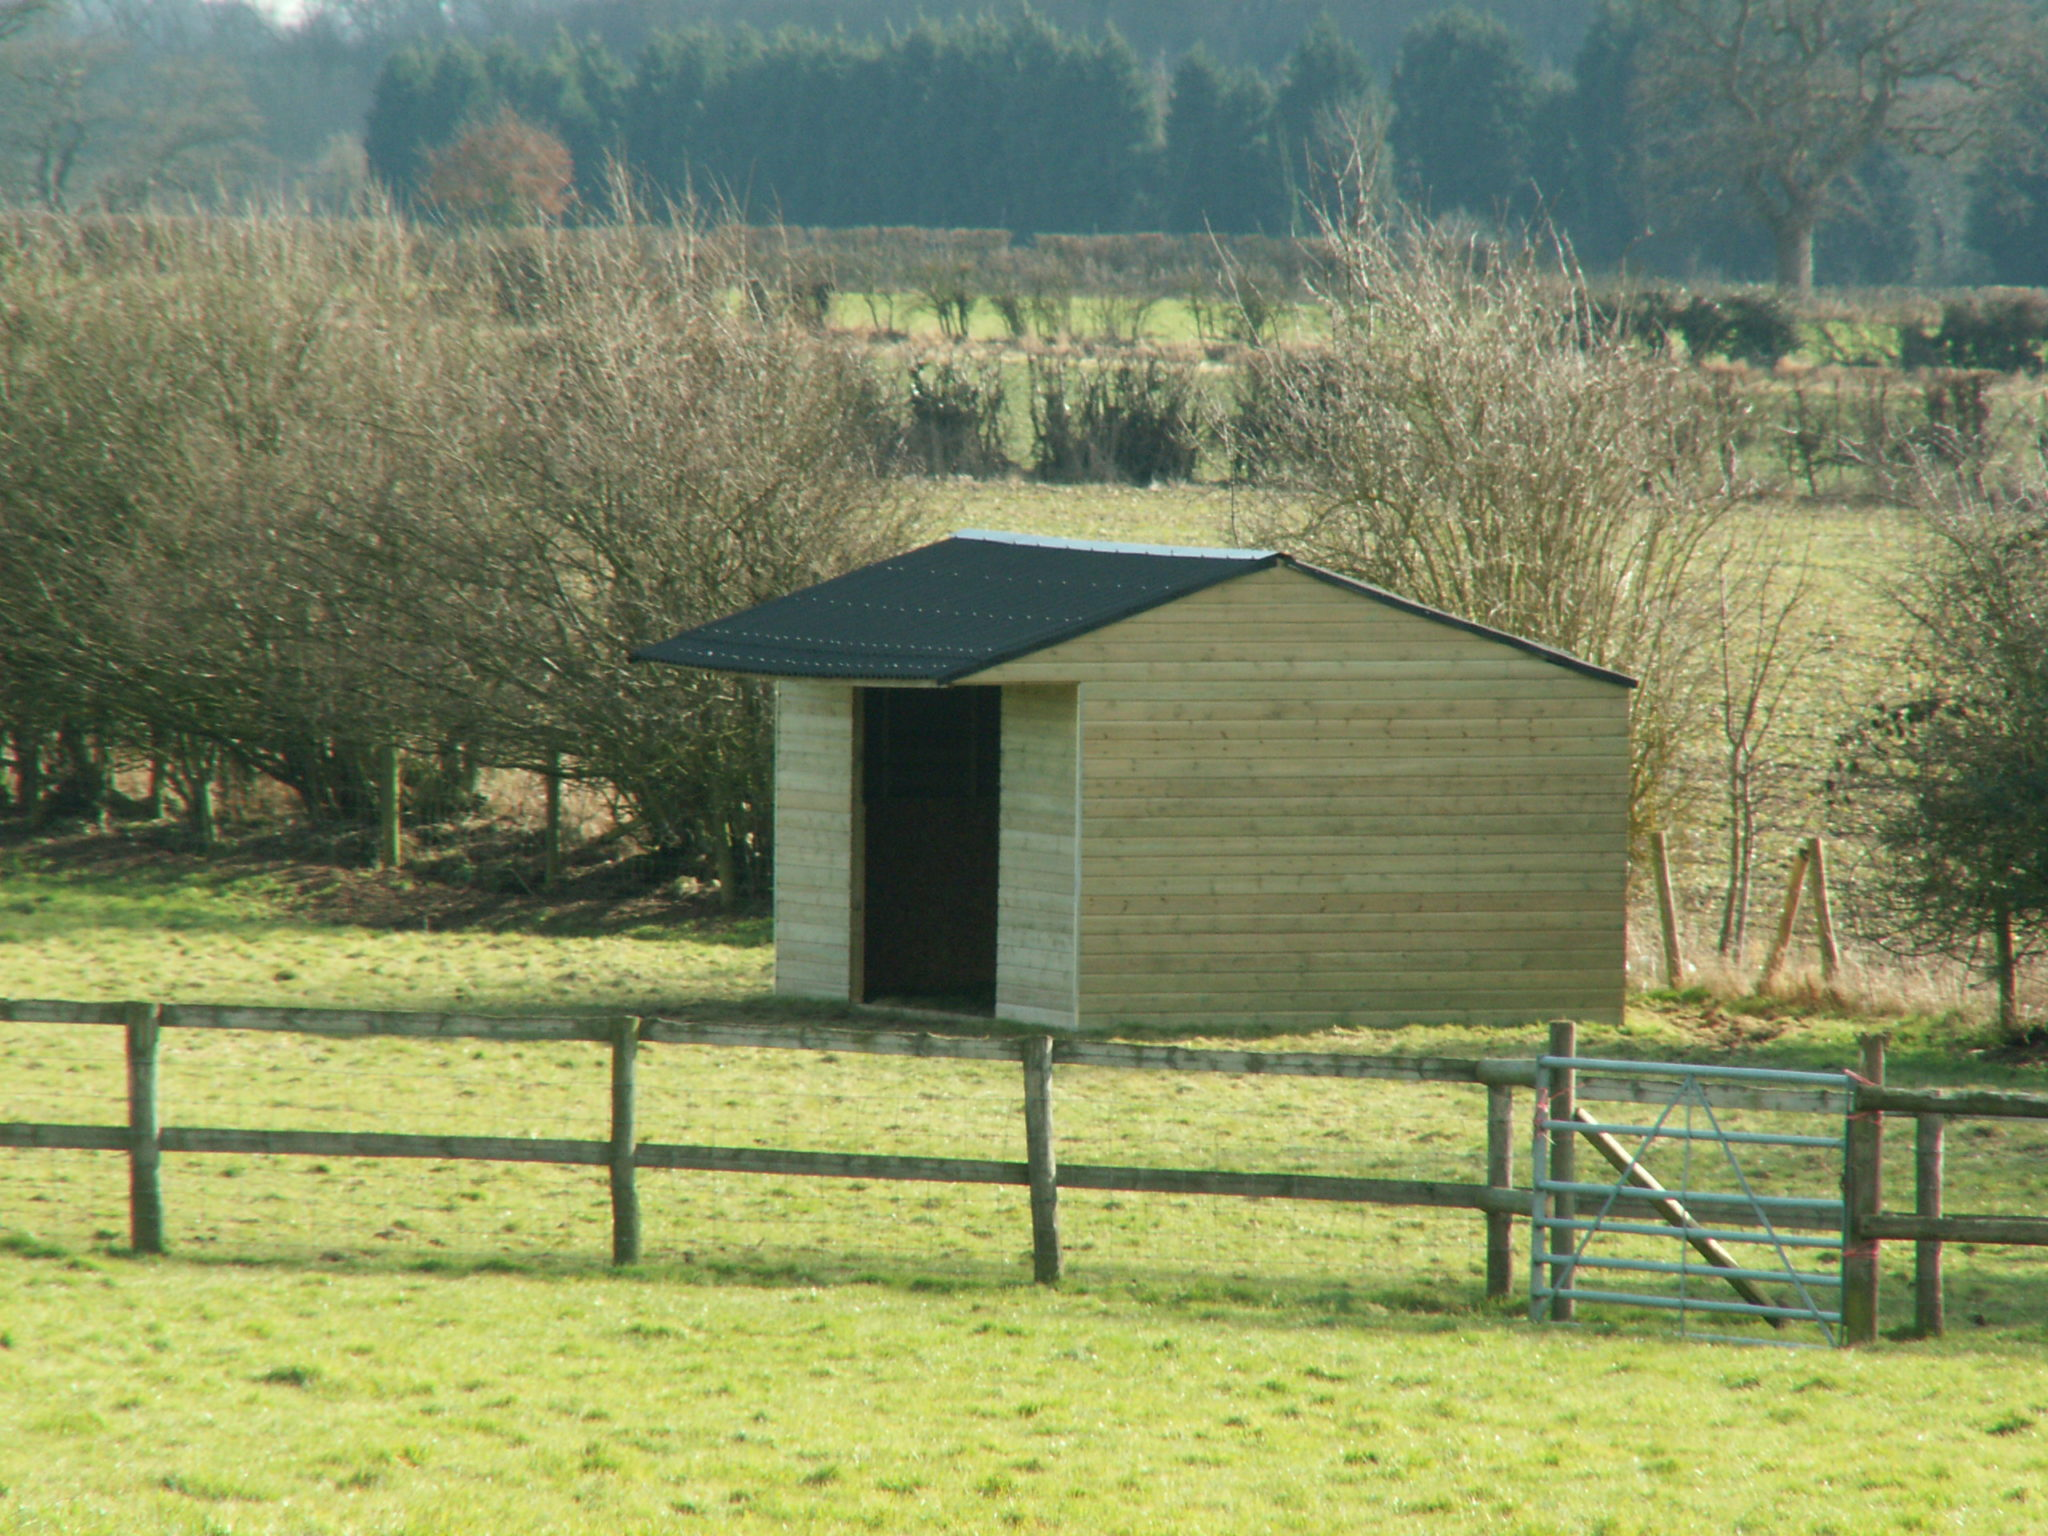 Single Mobile Field Shelter 16x12 foot